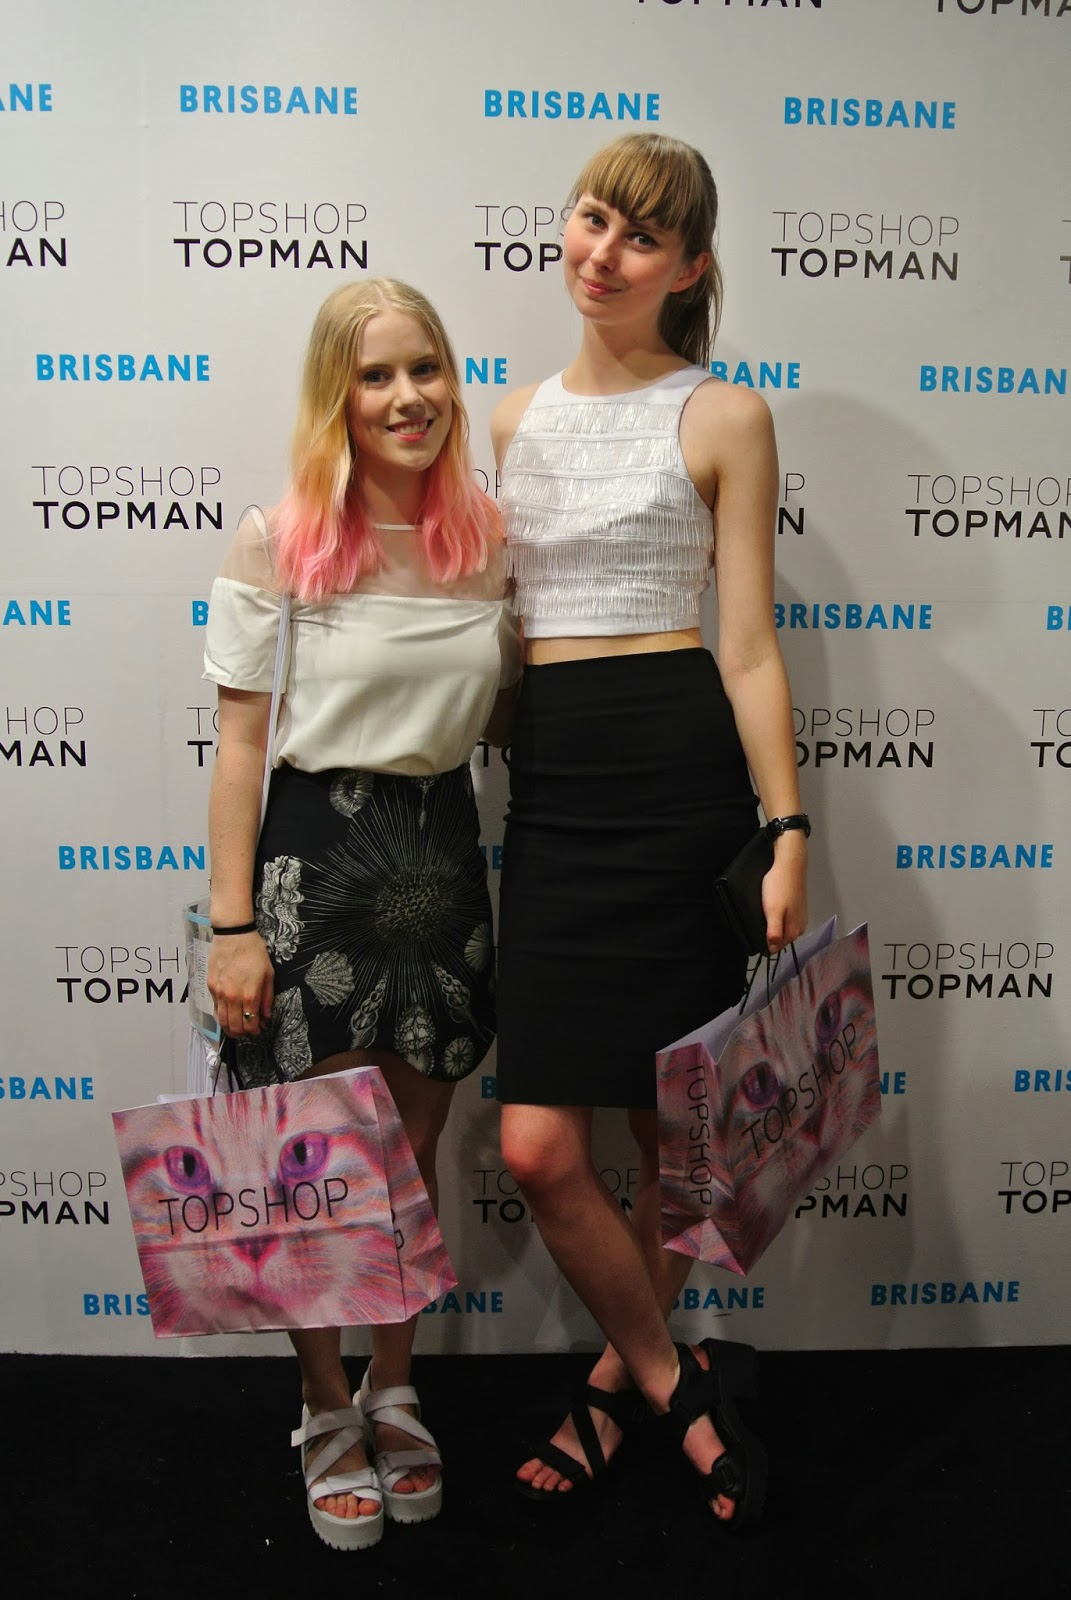 Topshop launch party, topshop brisbane bloggers, topshop brisbane opening, topshop brisbane launch party, beaded white crop top, black zara pencil skirt, sara phillips iris skirt, sara phillips shells skirt